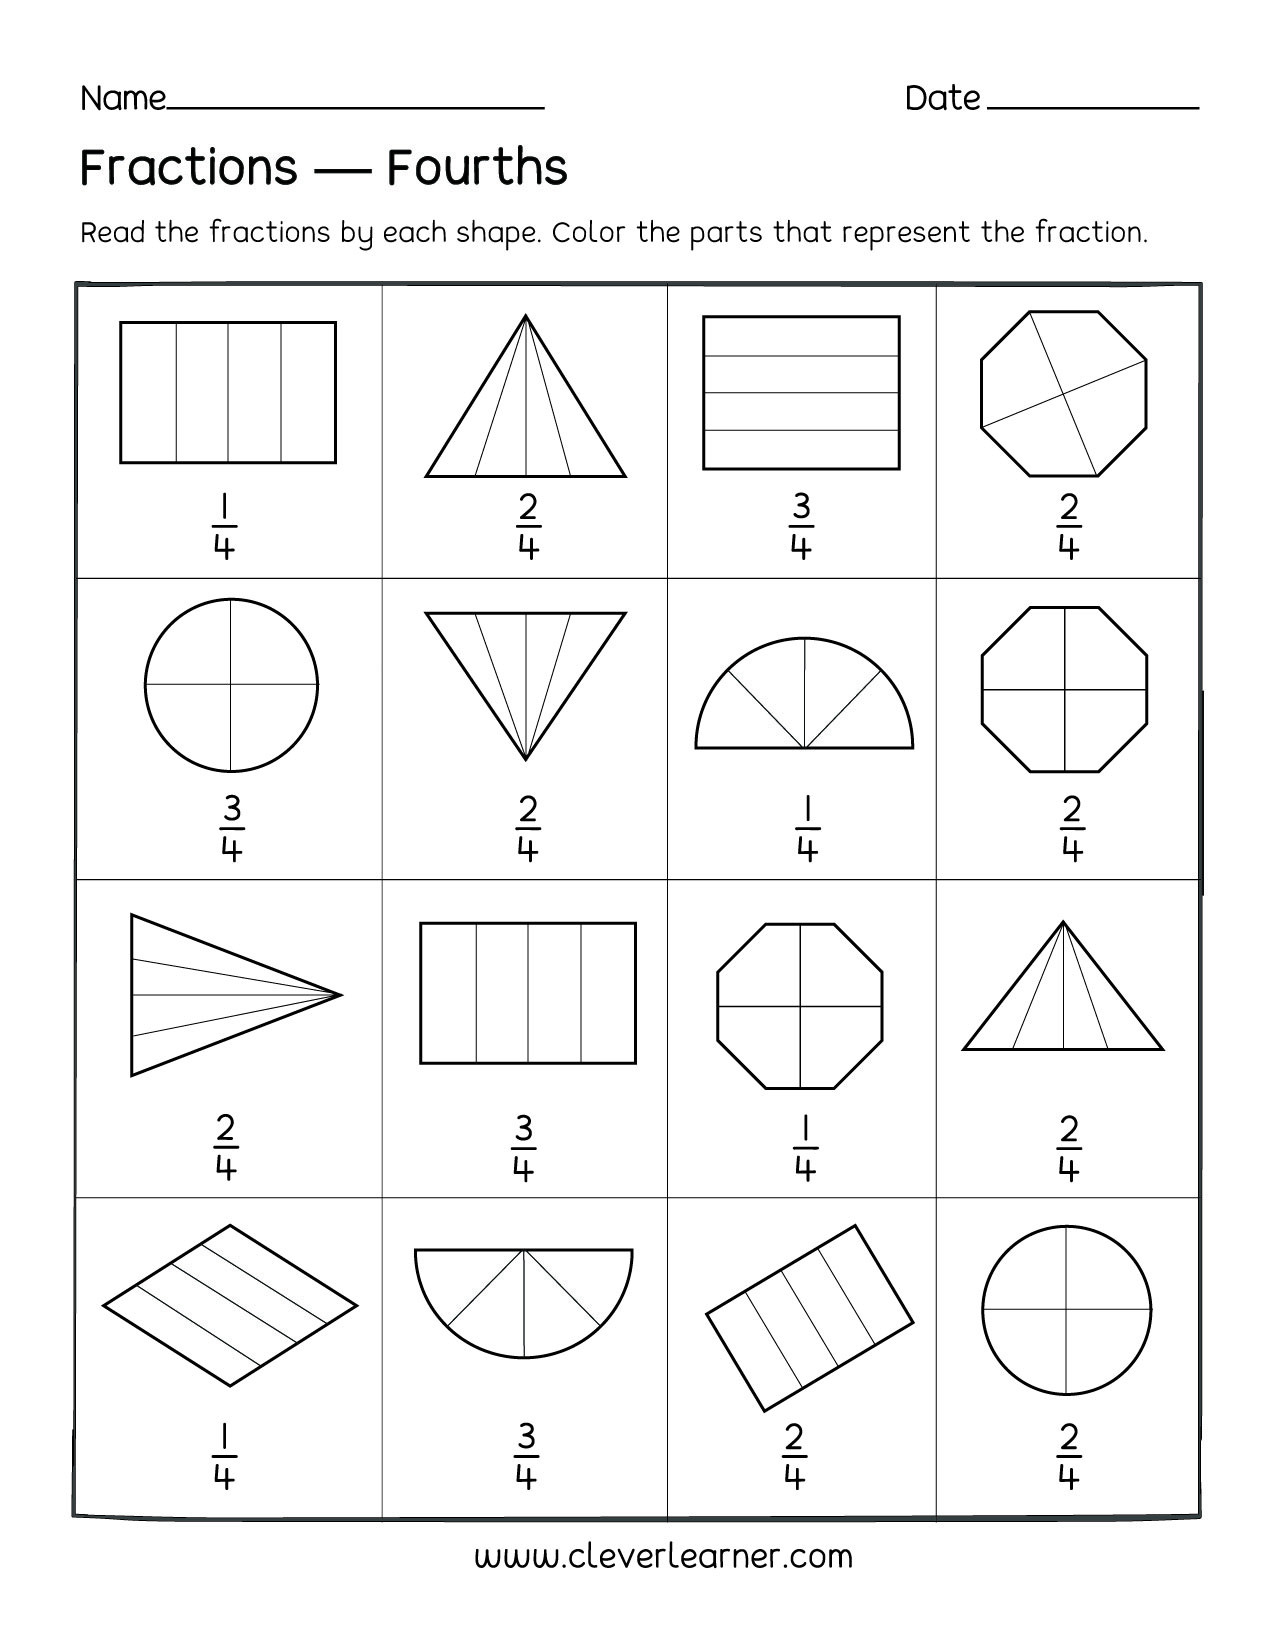 Fraction Worksheets for 1st Grade Fun Activity On Fractions Fourths Worksheets for Children